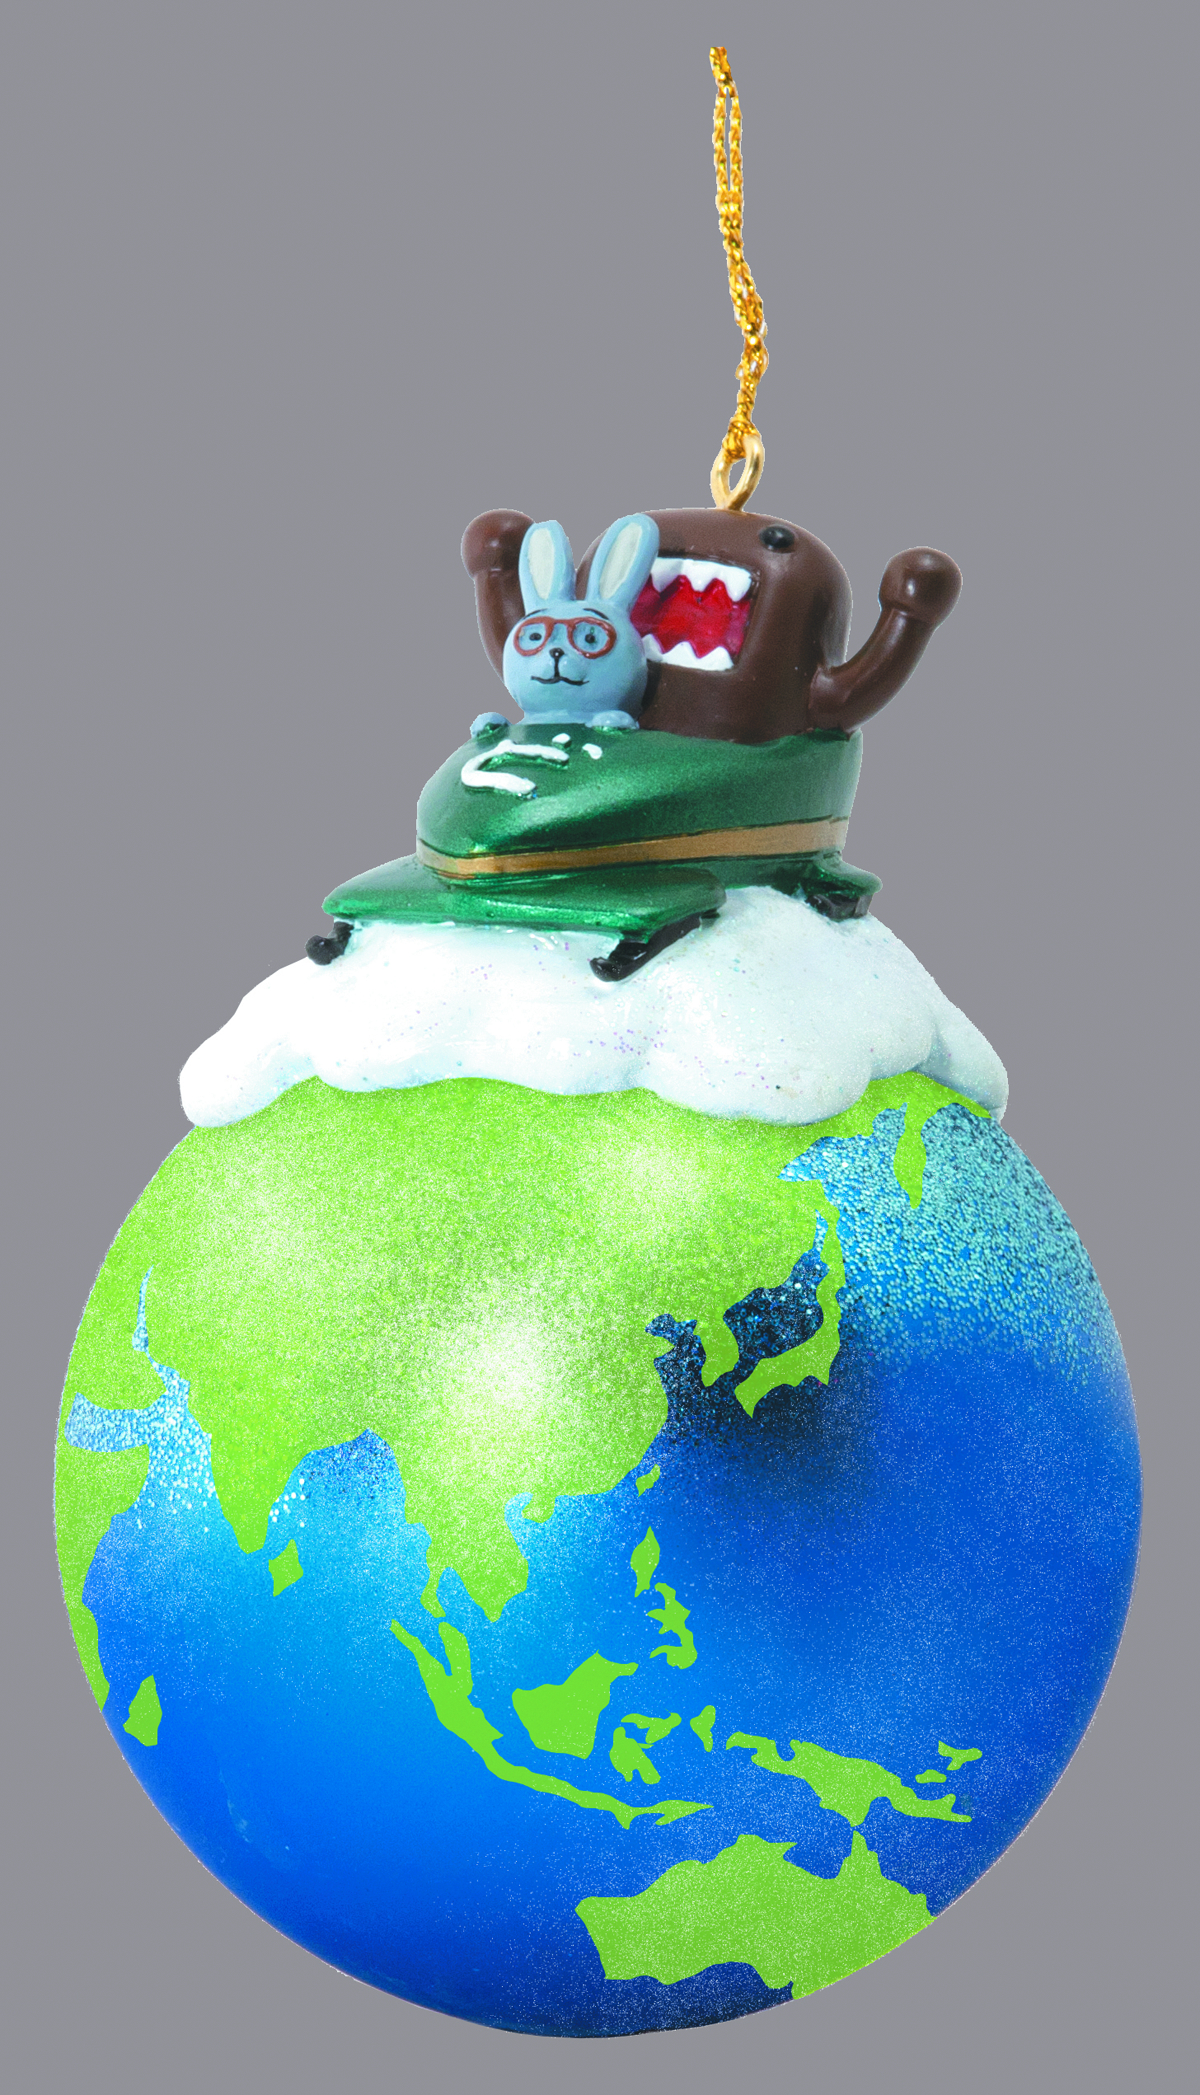 DOMO & FRIENDS ON EARTH ORNAMENT